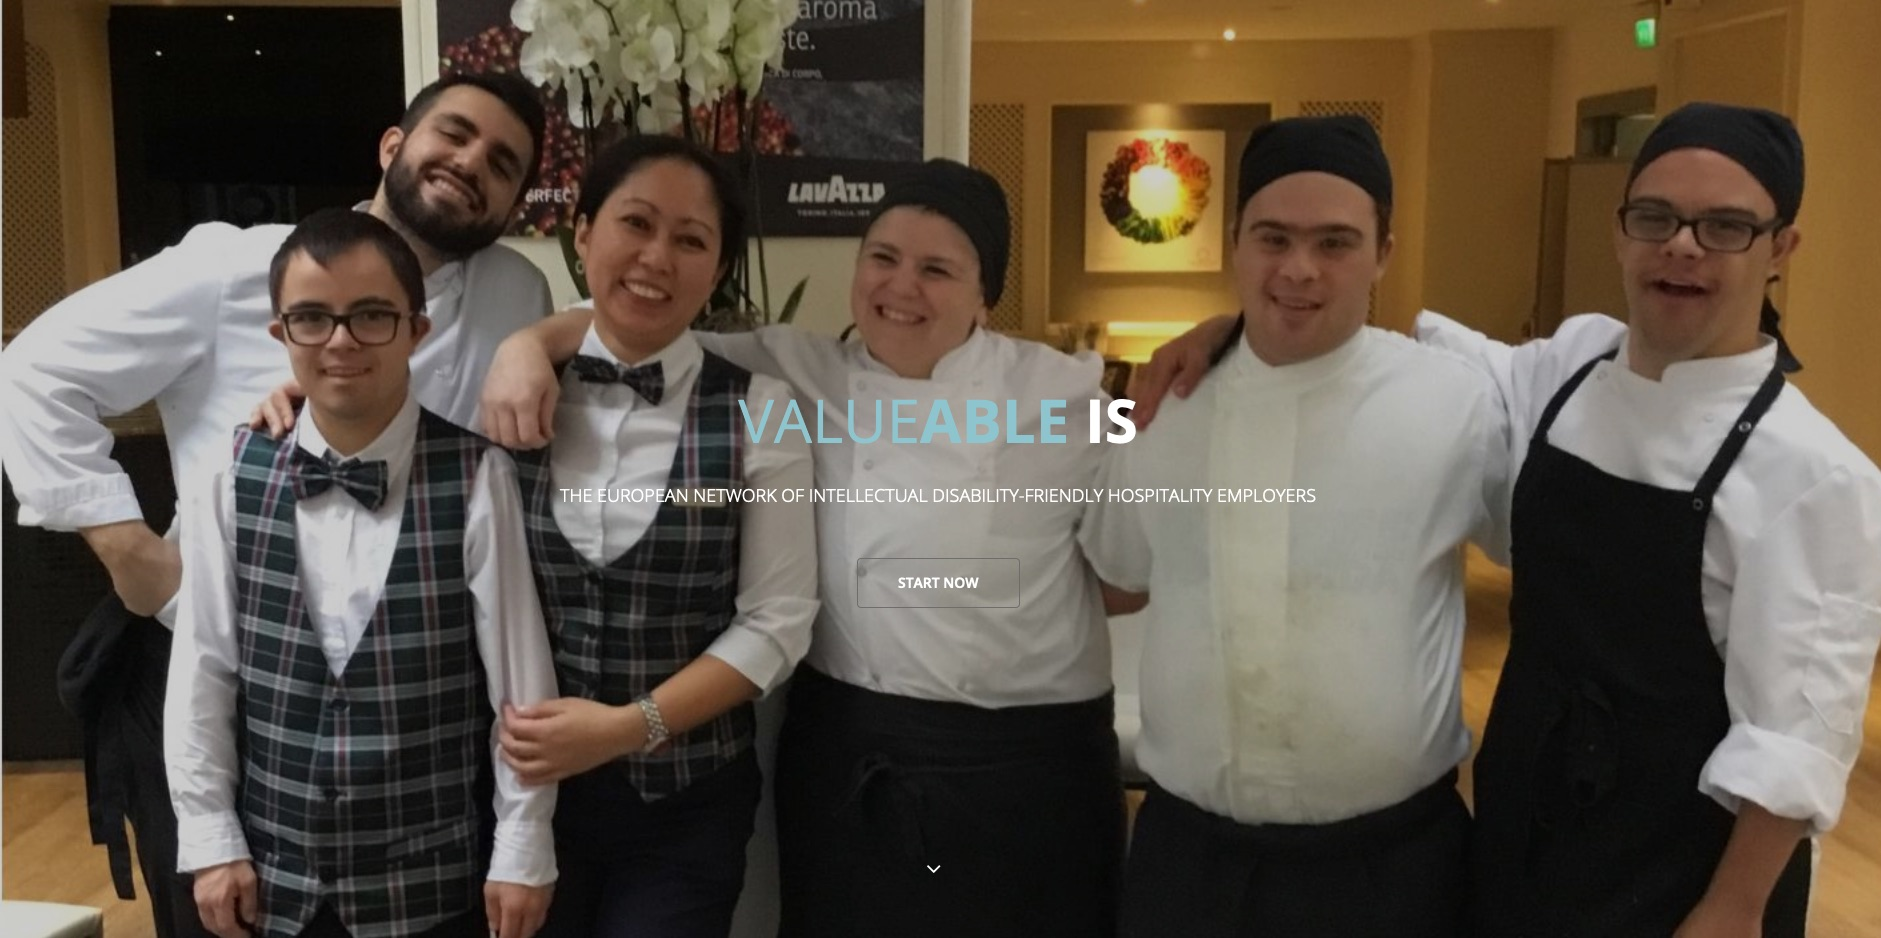 Screenshot of valueable.eu website showing hospitality and catering staff in uniform